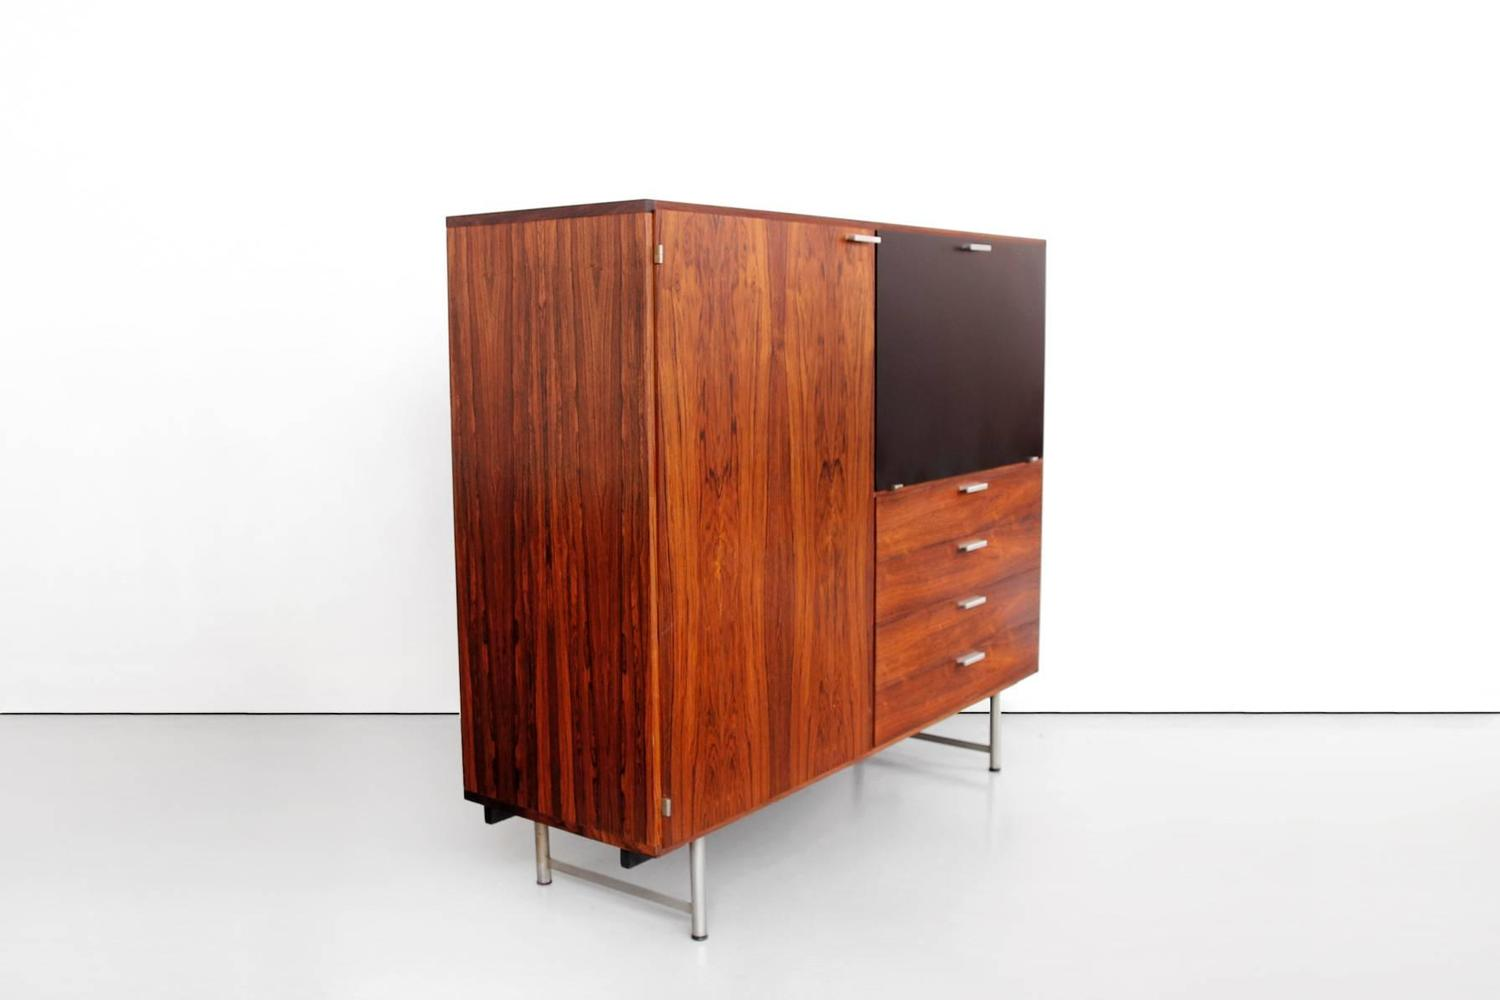 Rare Dutch Modernist Cabinet In Rosewood By Cees Braakman